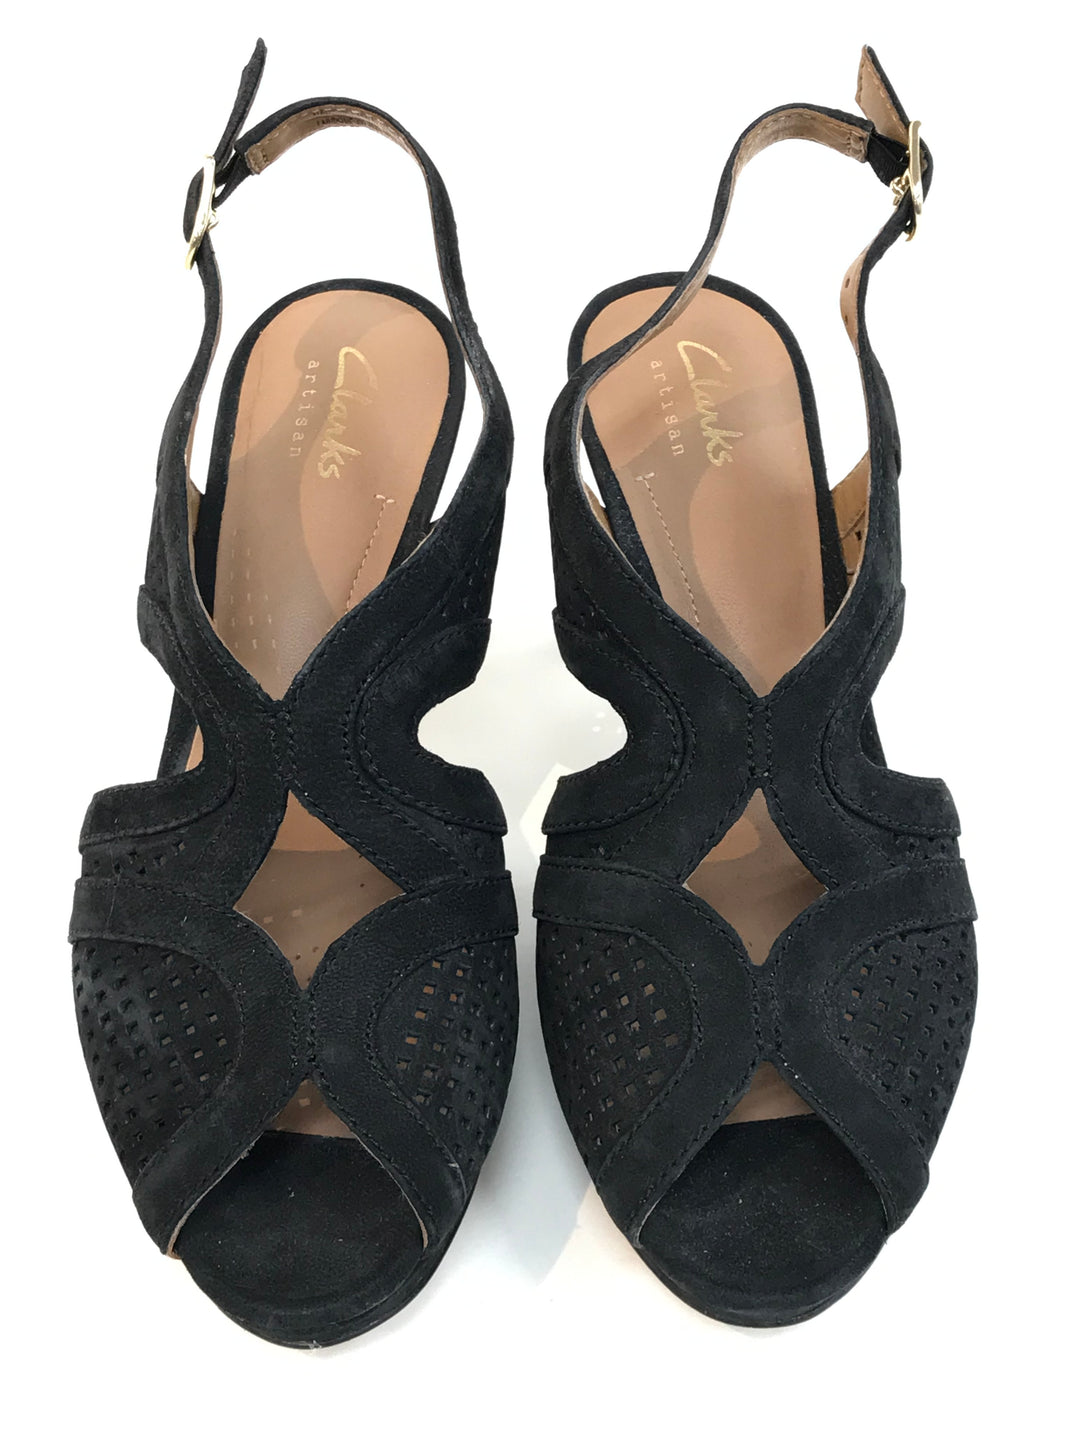 Primary Photo - BRAND: CLARKS <BR>STYLE: SANDALS LOW<BR>COLOR: BLACK <BR>SIZE: 6.5 <BR>SKU: 262-26275-46629<BR>AS IS